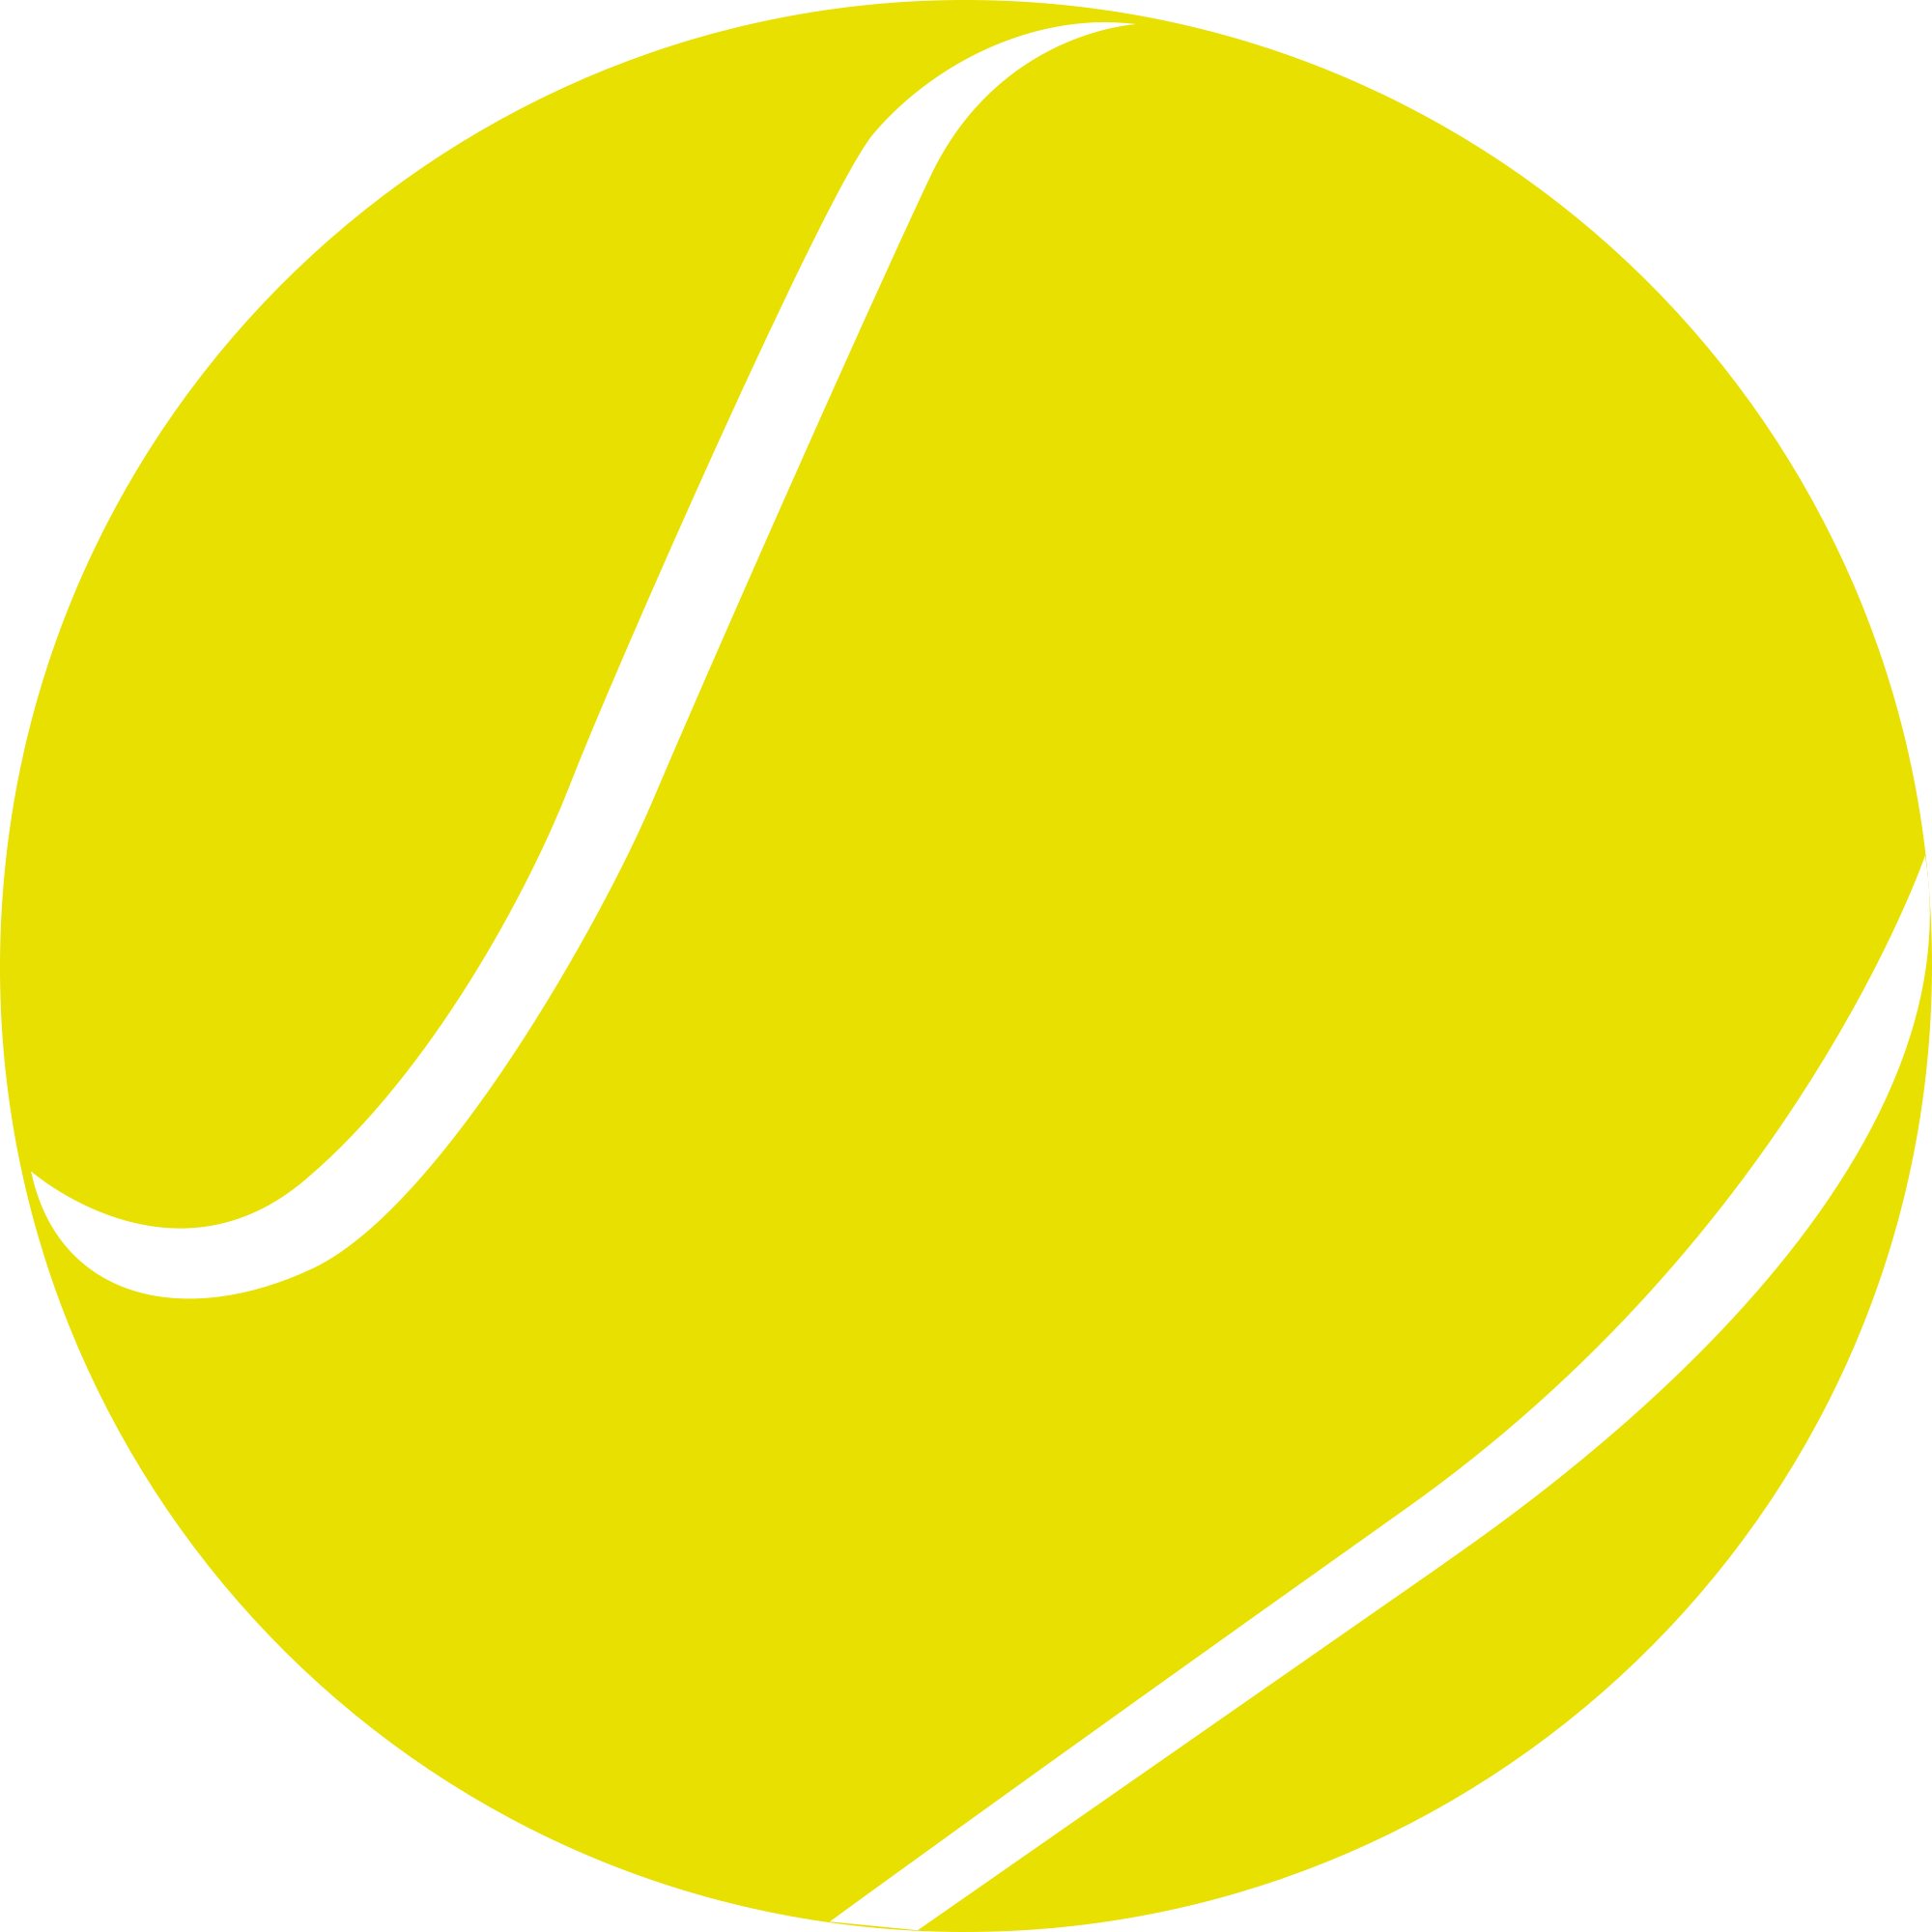 Tennis ball PNG image  Tennis ball PNG image